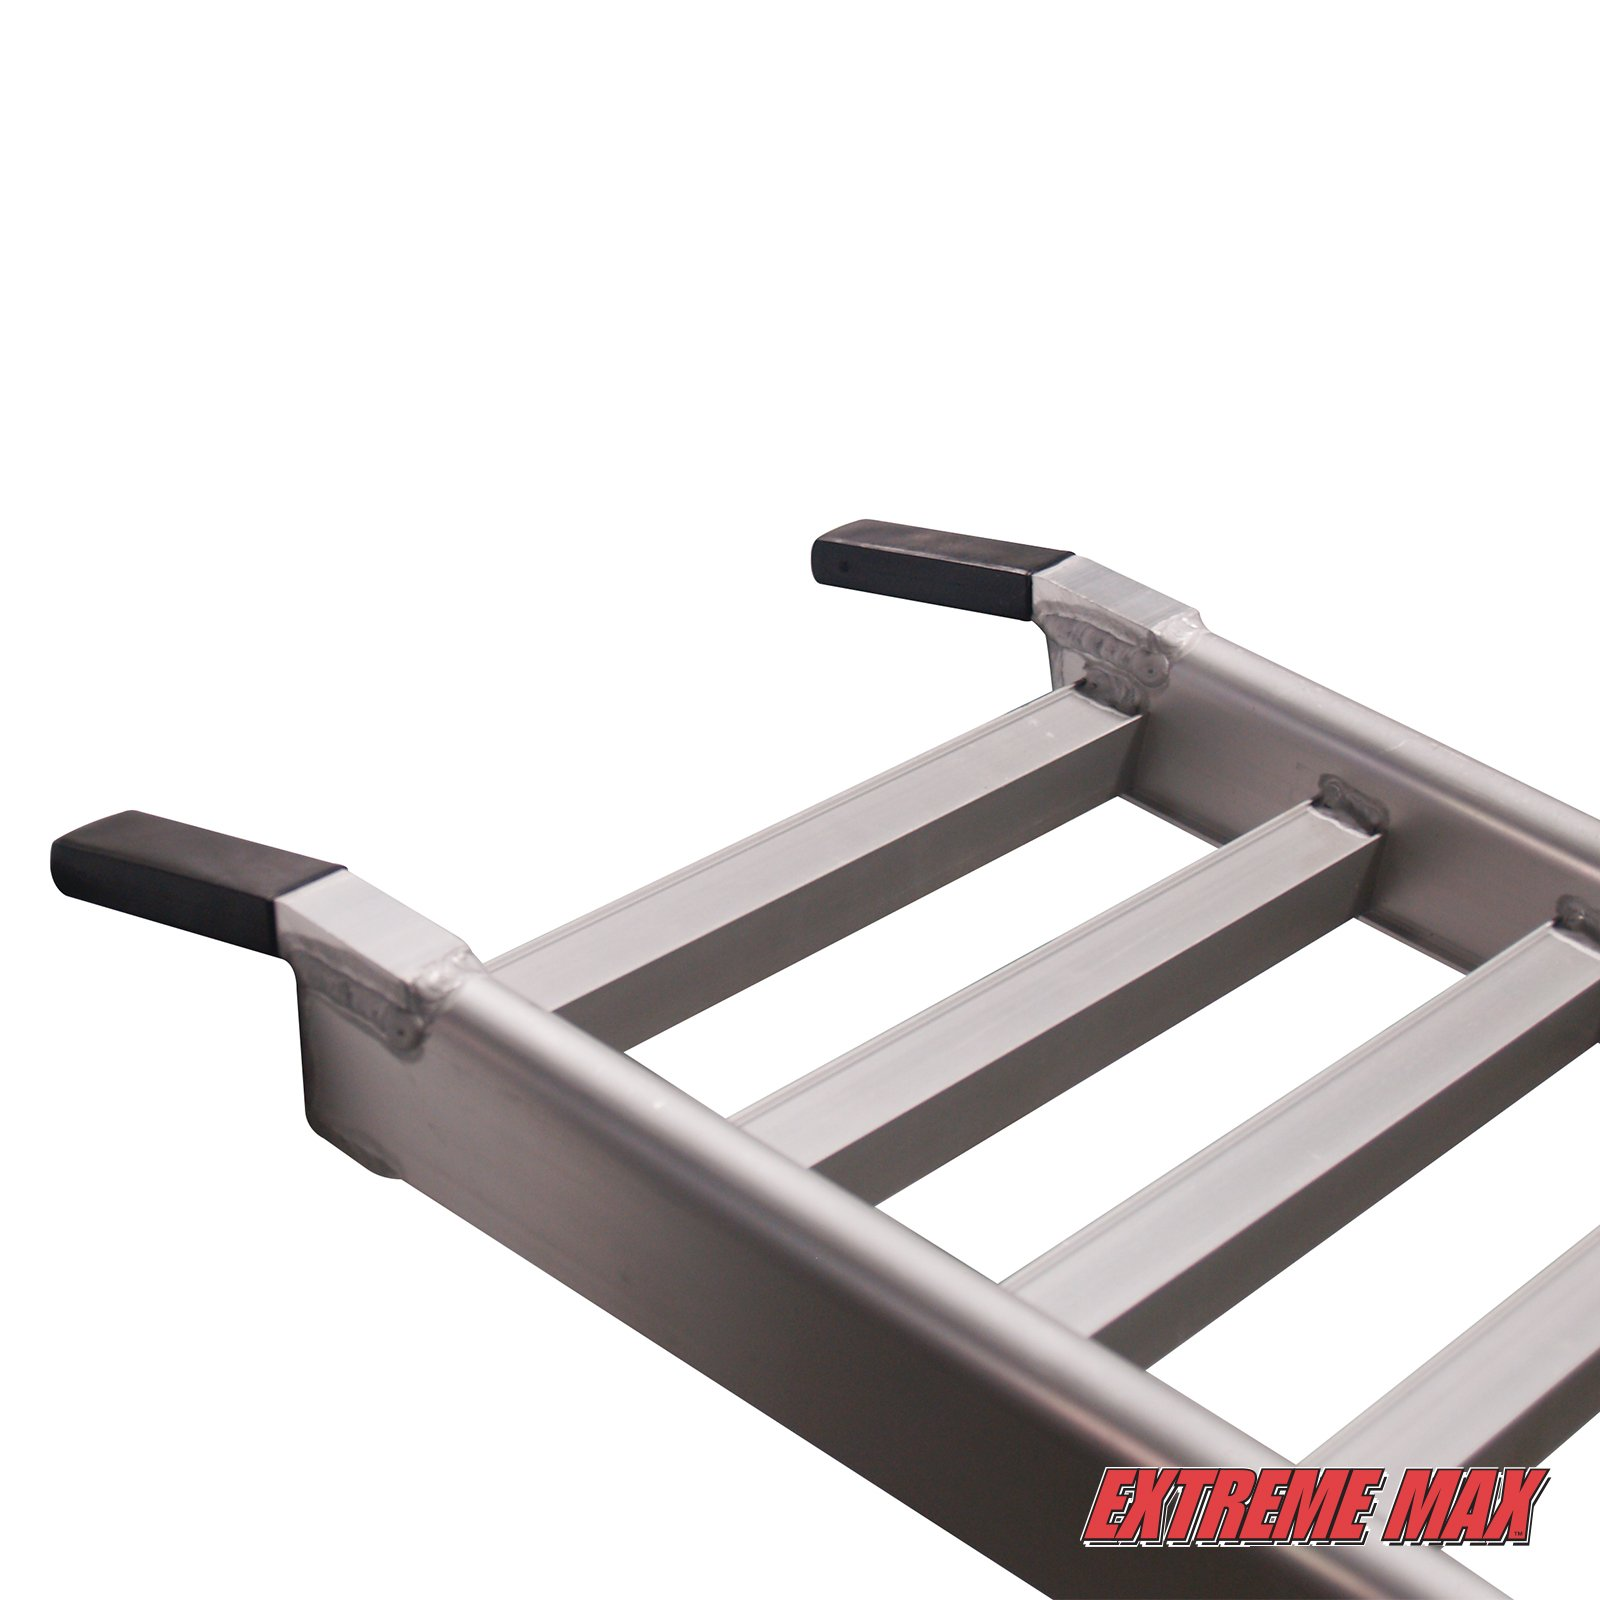 Extreme Max (NR002S-SLVR) Motorcycle RampXtender Aluminum Ramp Set and Tailgate Extender Combo by Extreme Max (Image #8)